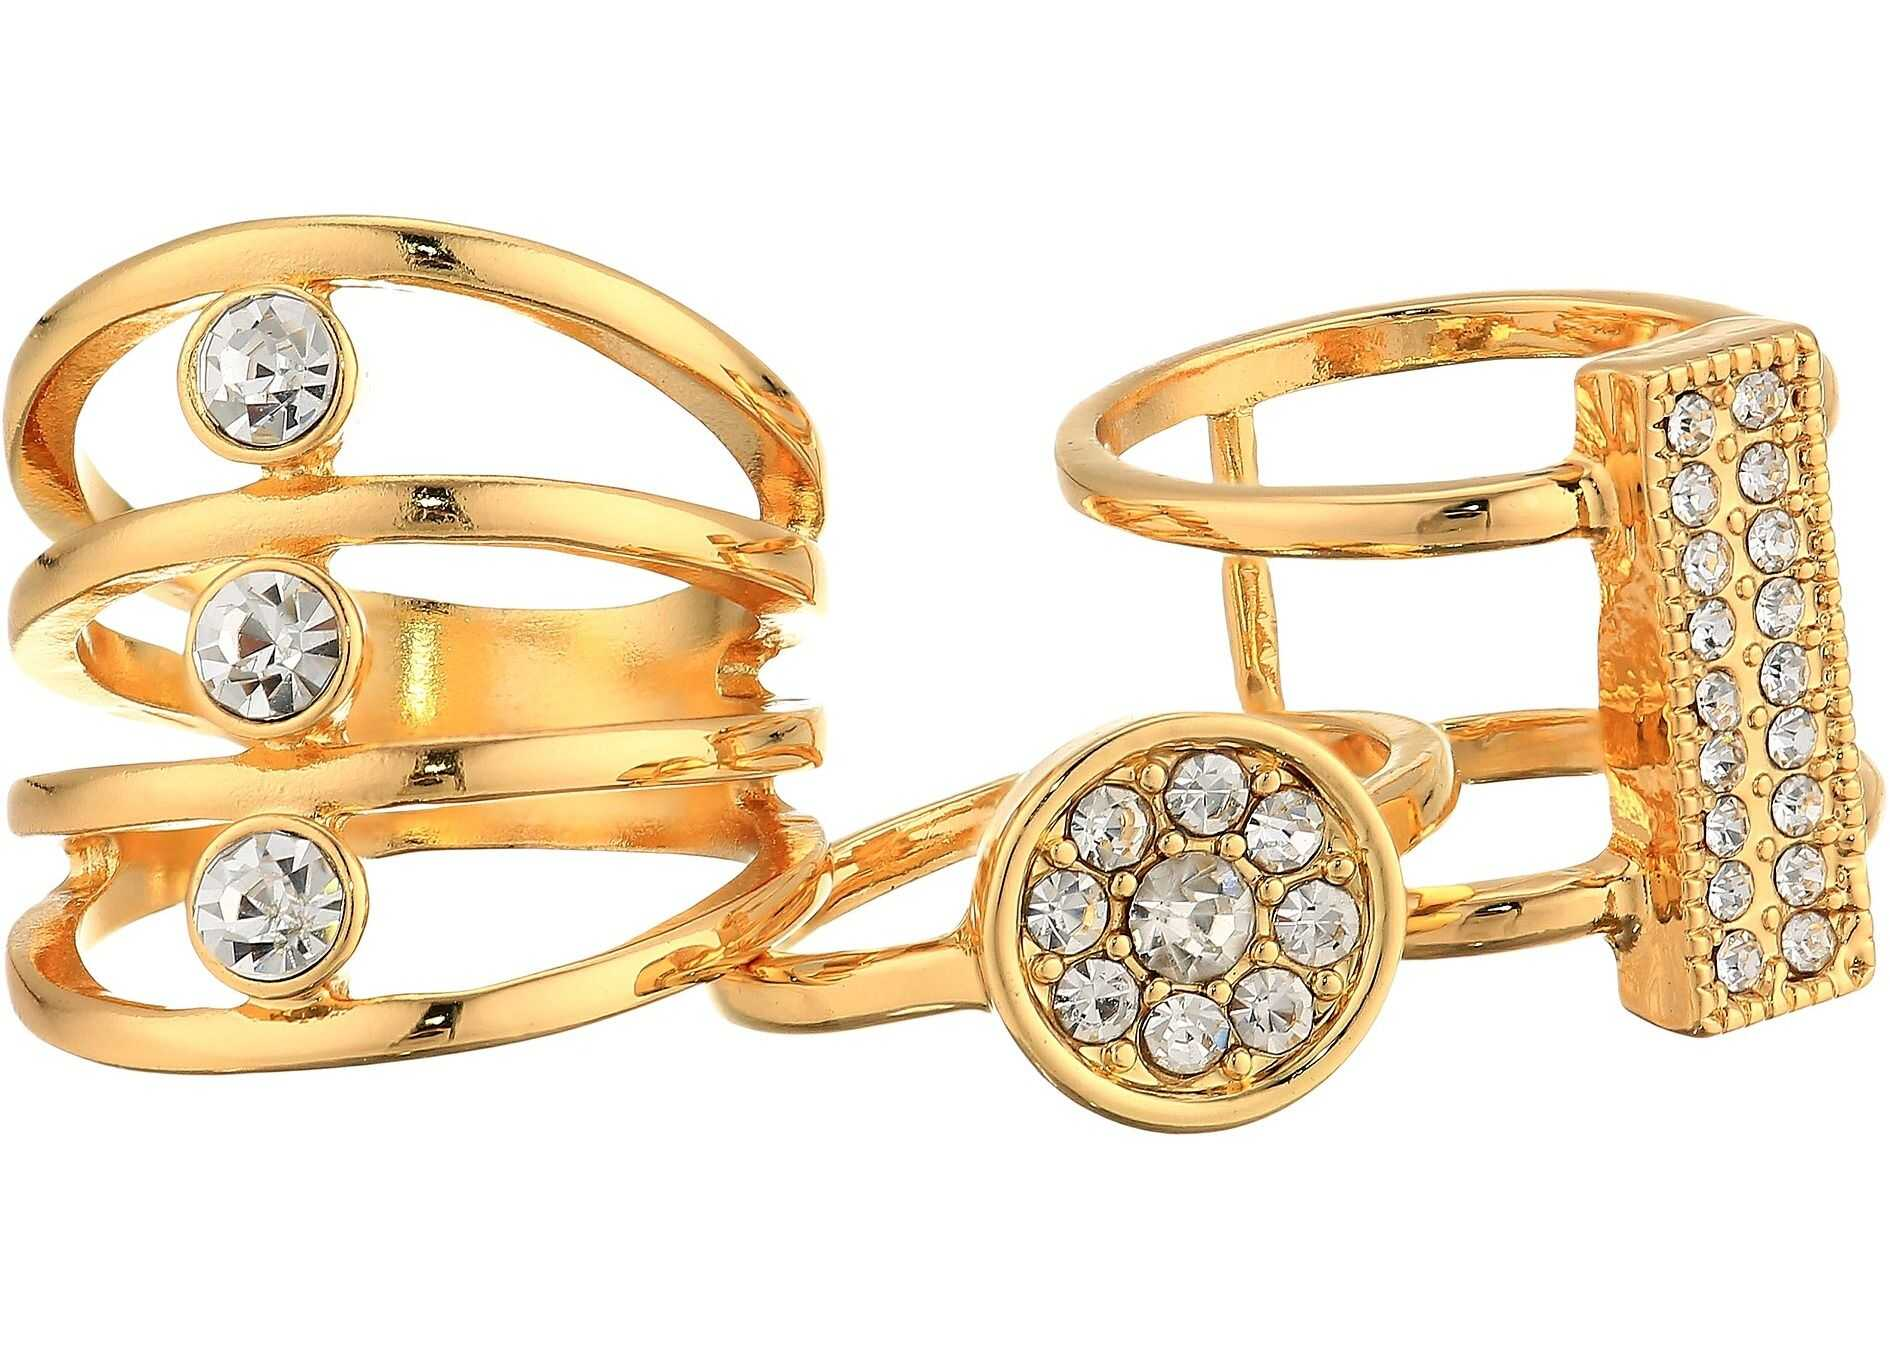 GUESS Three-Piece Ring Set with Crystal Stones Gold